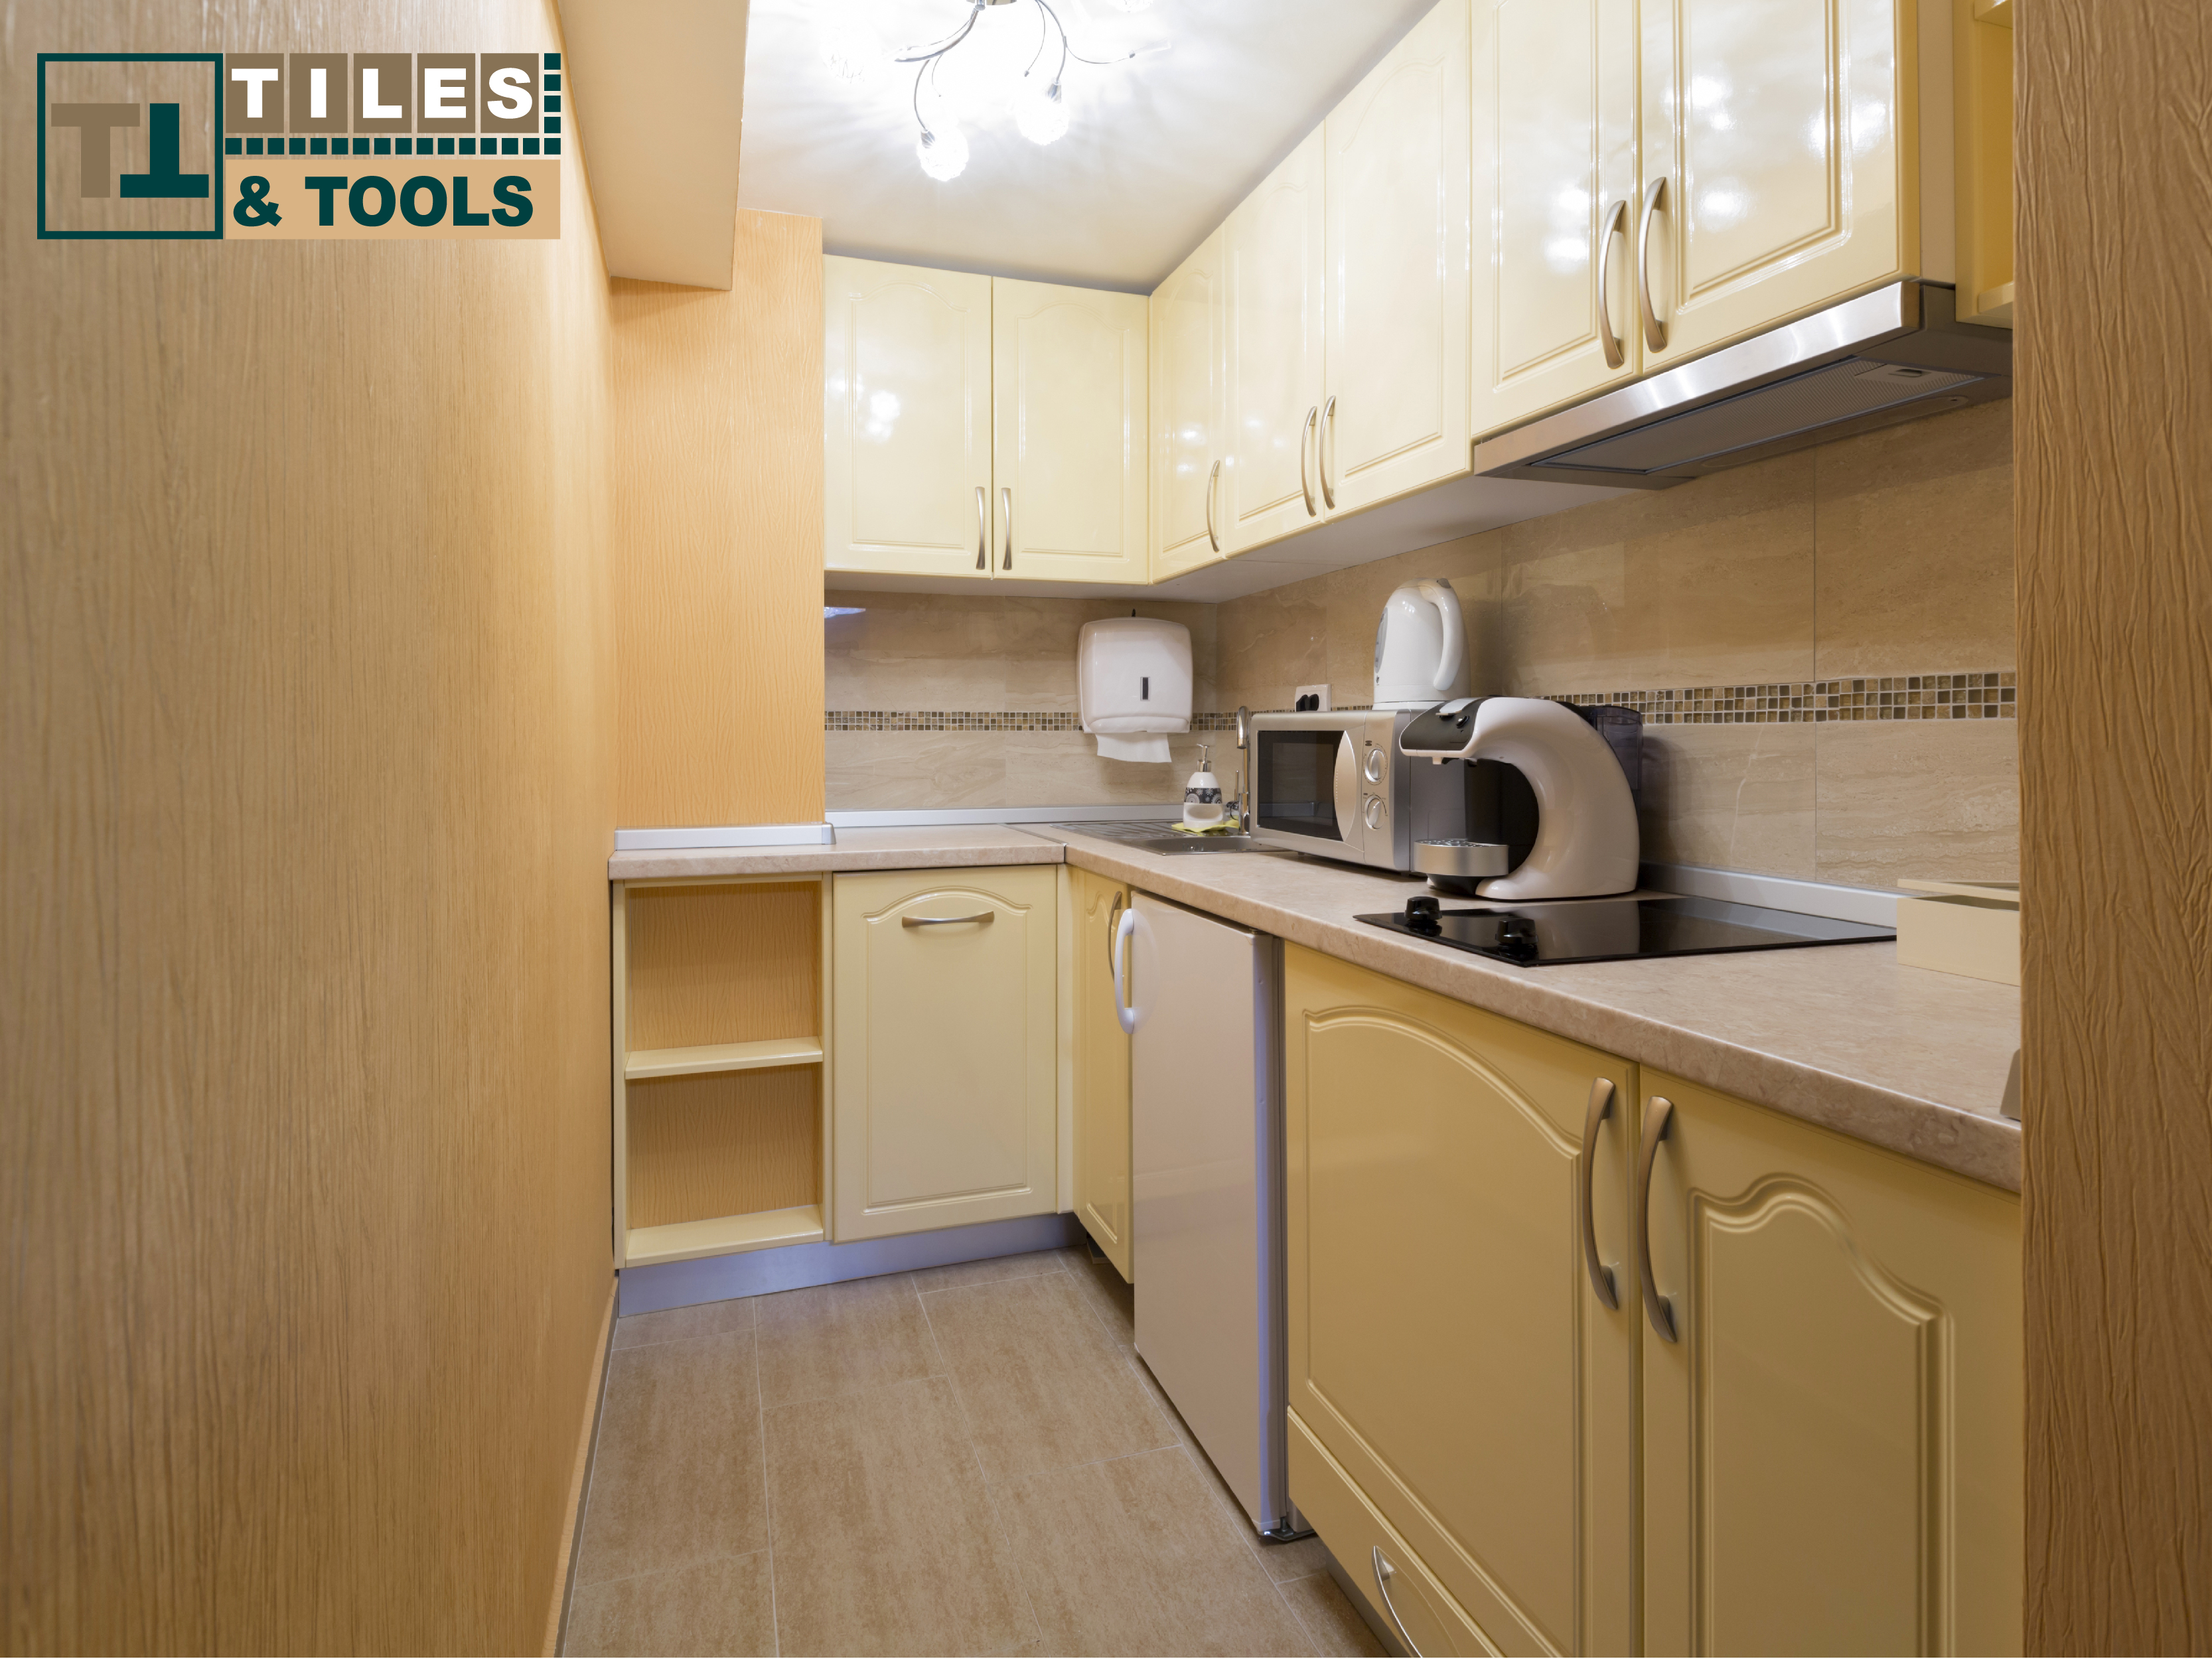 Small Kitchen Designs  Tiles And Tools - Just kitchen designs